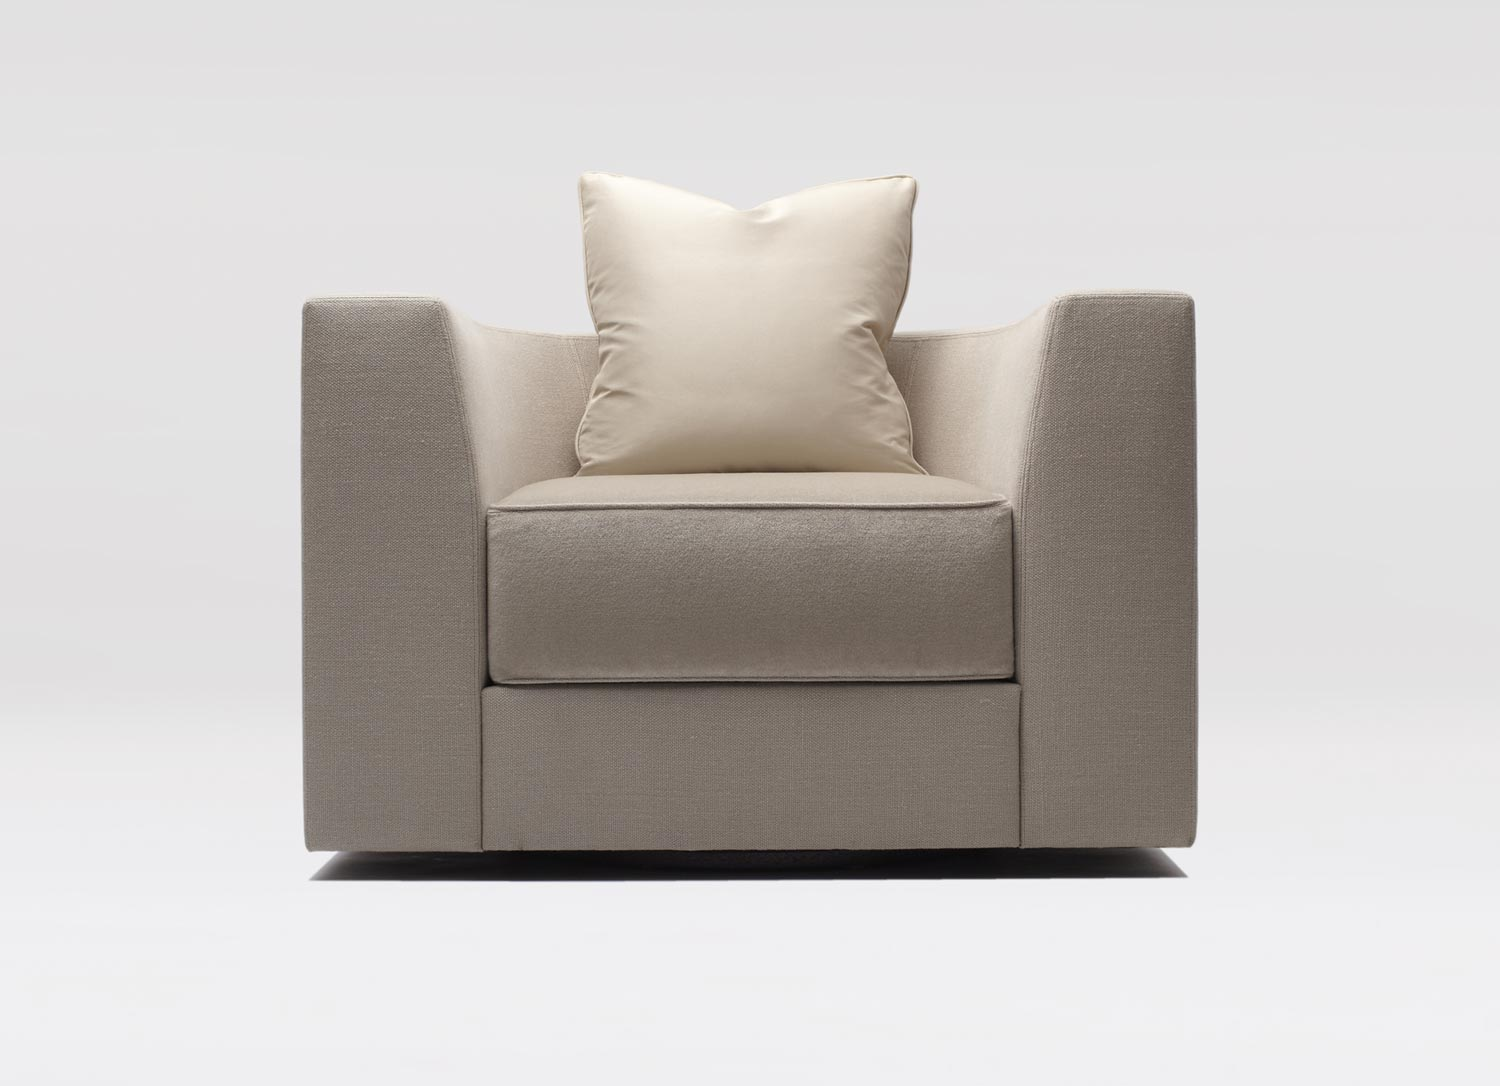 Sofas And Stuff Reviews Barrel Lounge Chair Coraggio